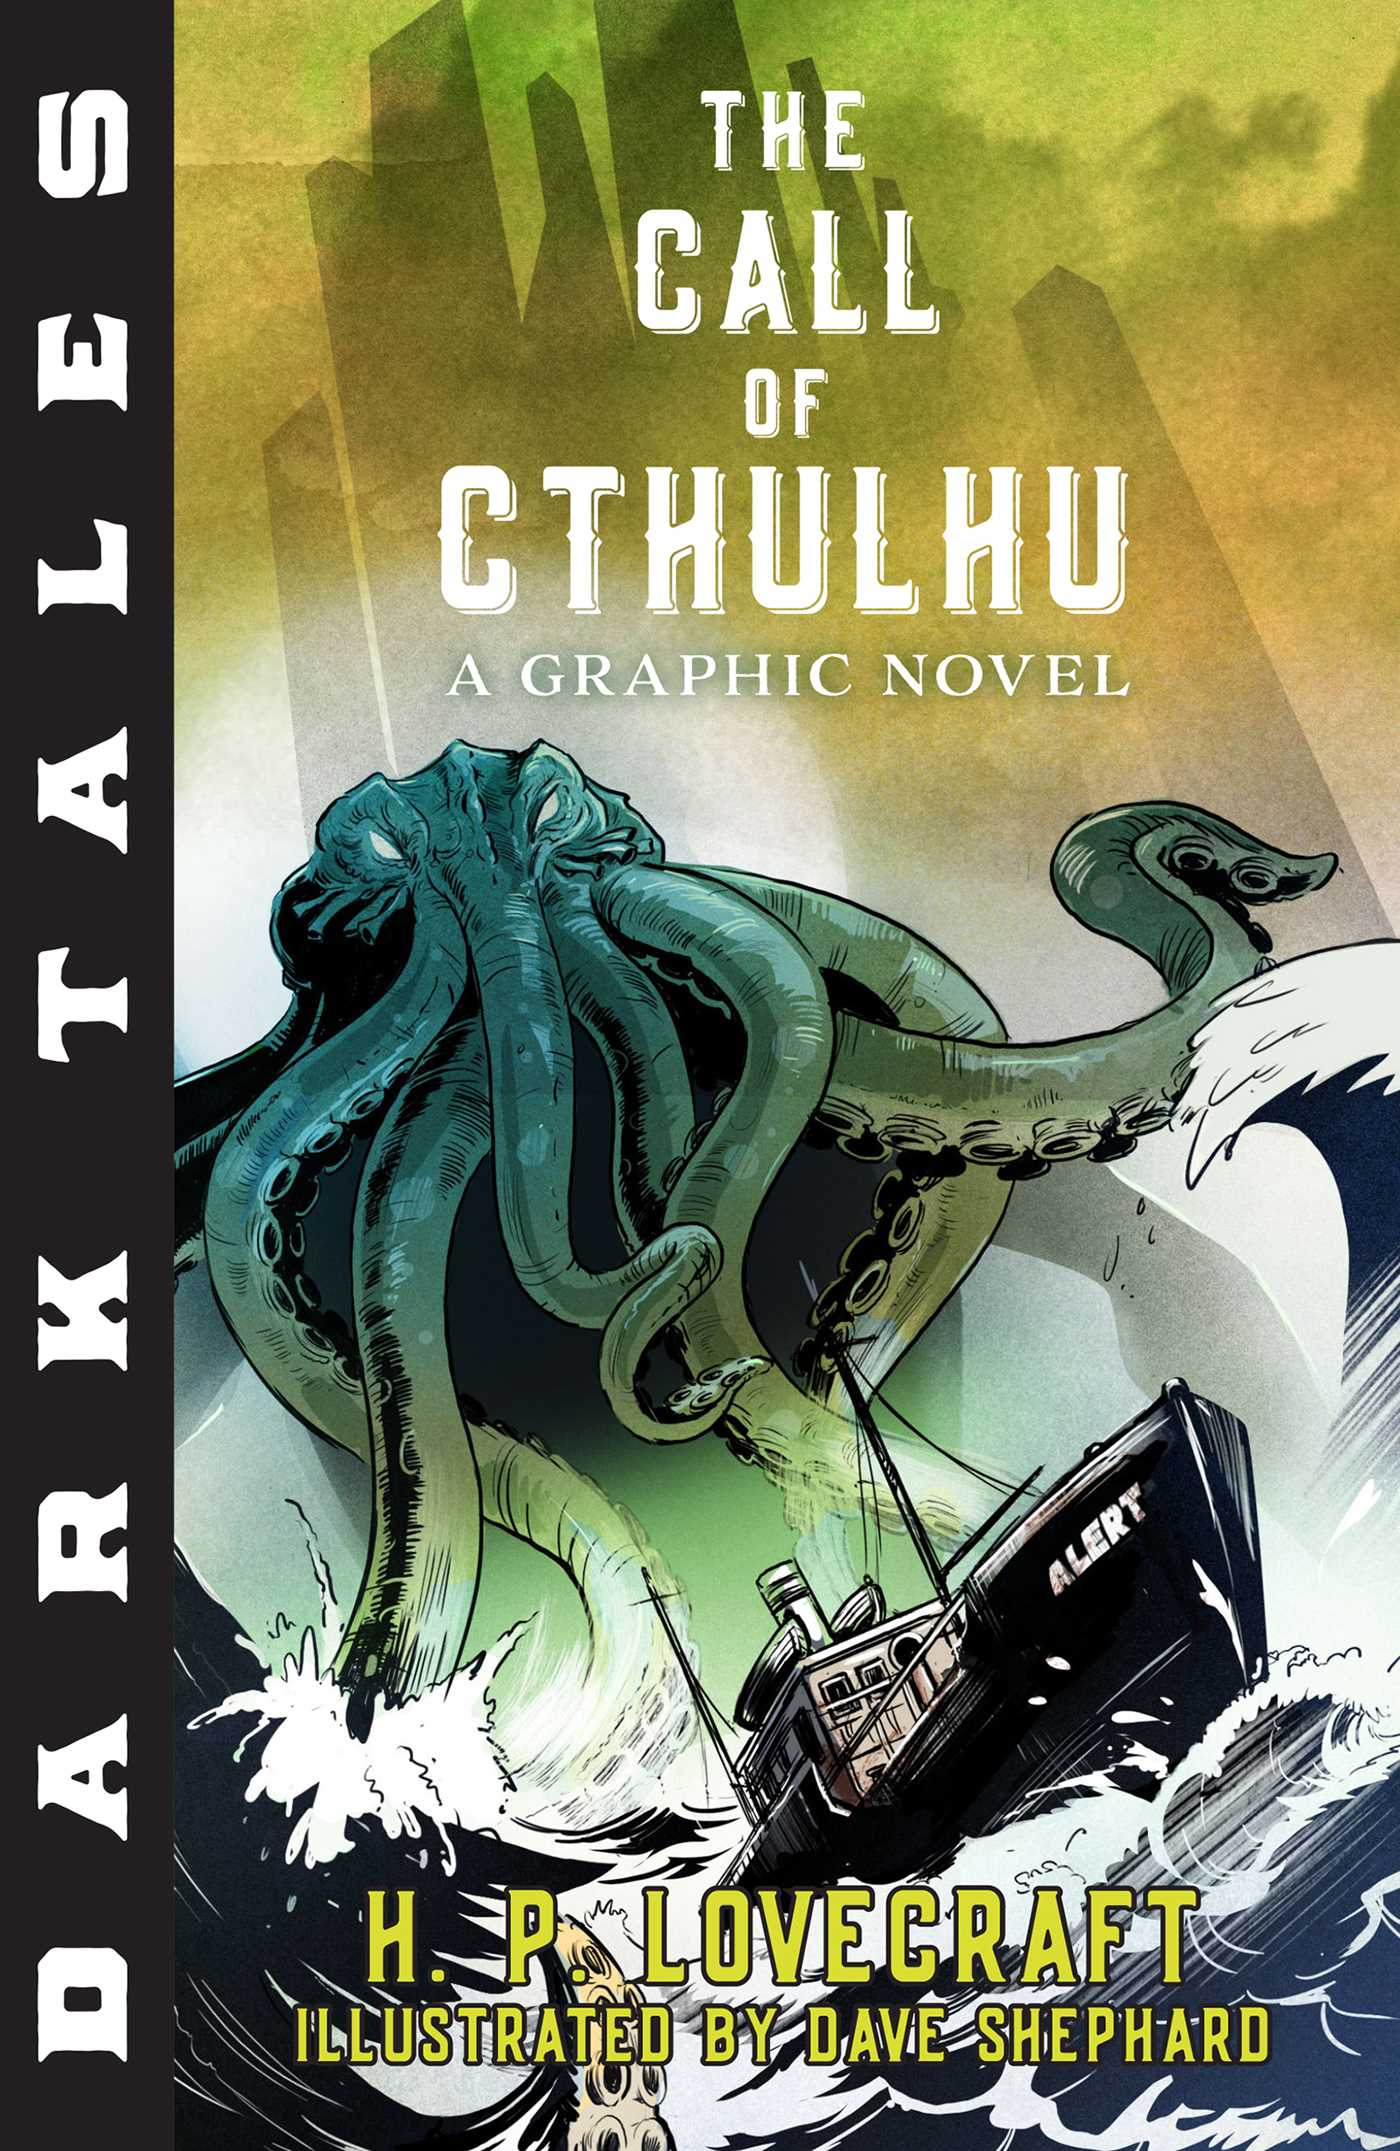 Dark tales the call of cthulhu 9781684121014 hr